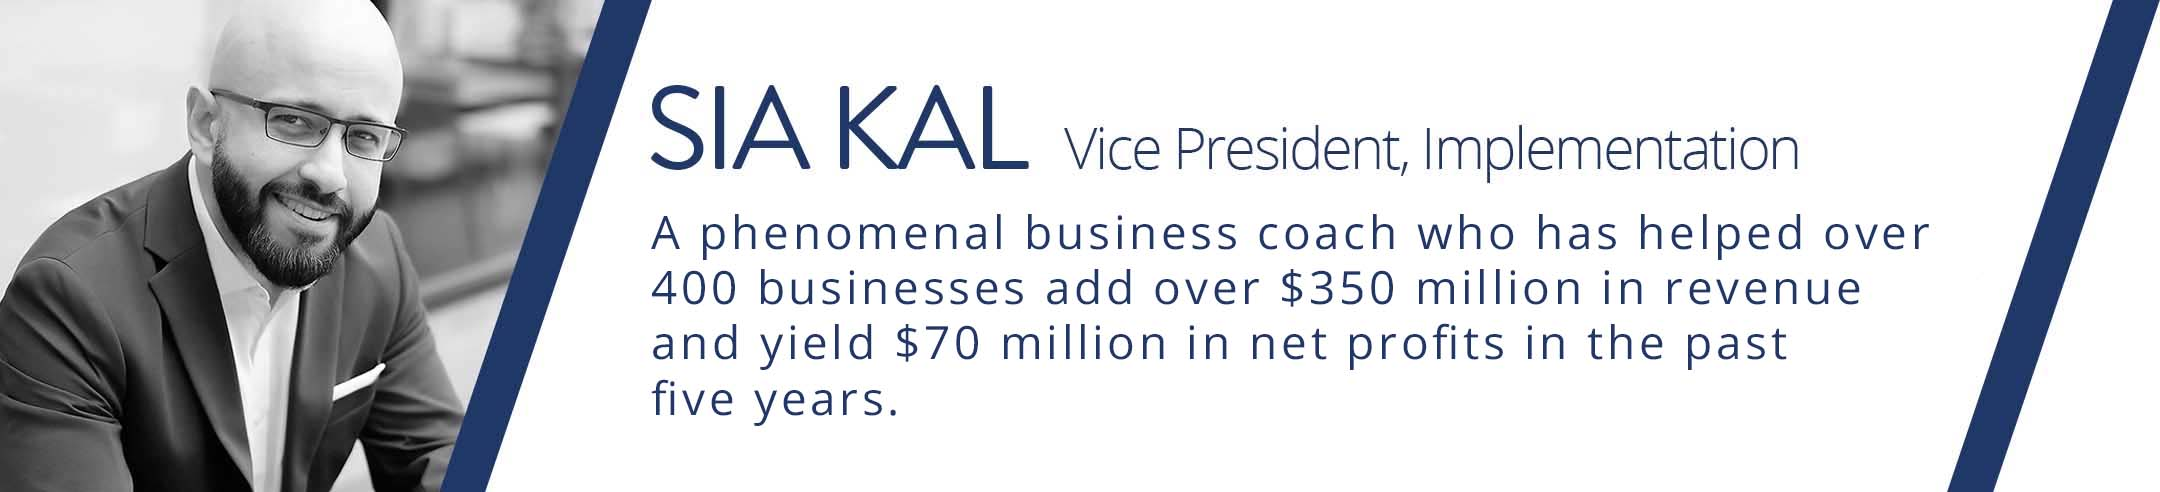 kickstart is presented by Sia Kal, a phenomenal business coach who has helped over 400 businesses add over $350 million in revenue and yield $70 million in net profits in the past 5 years.